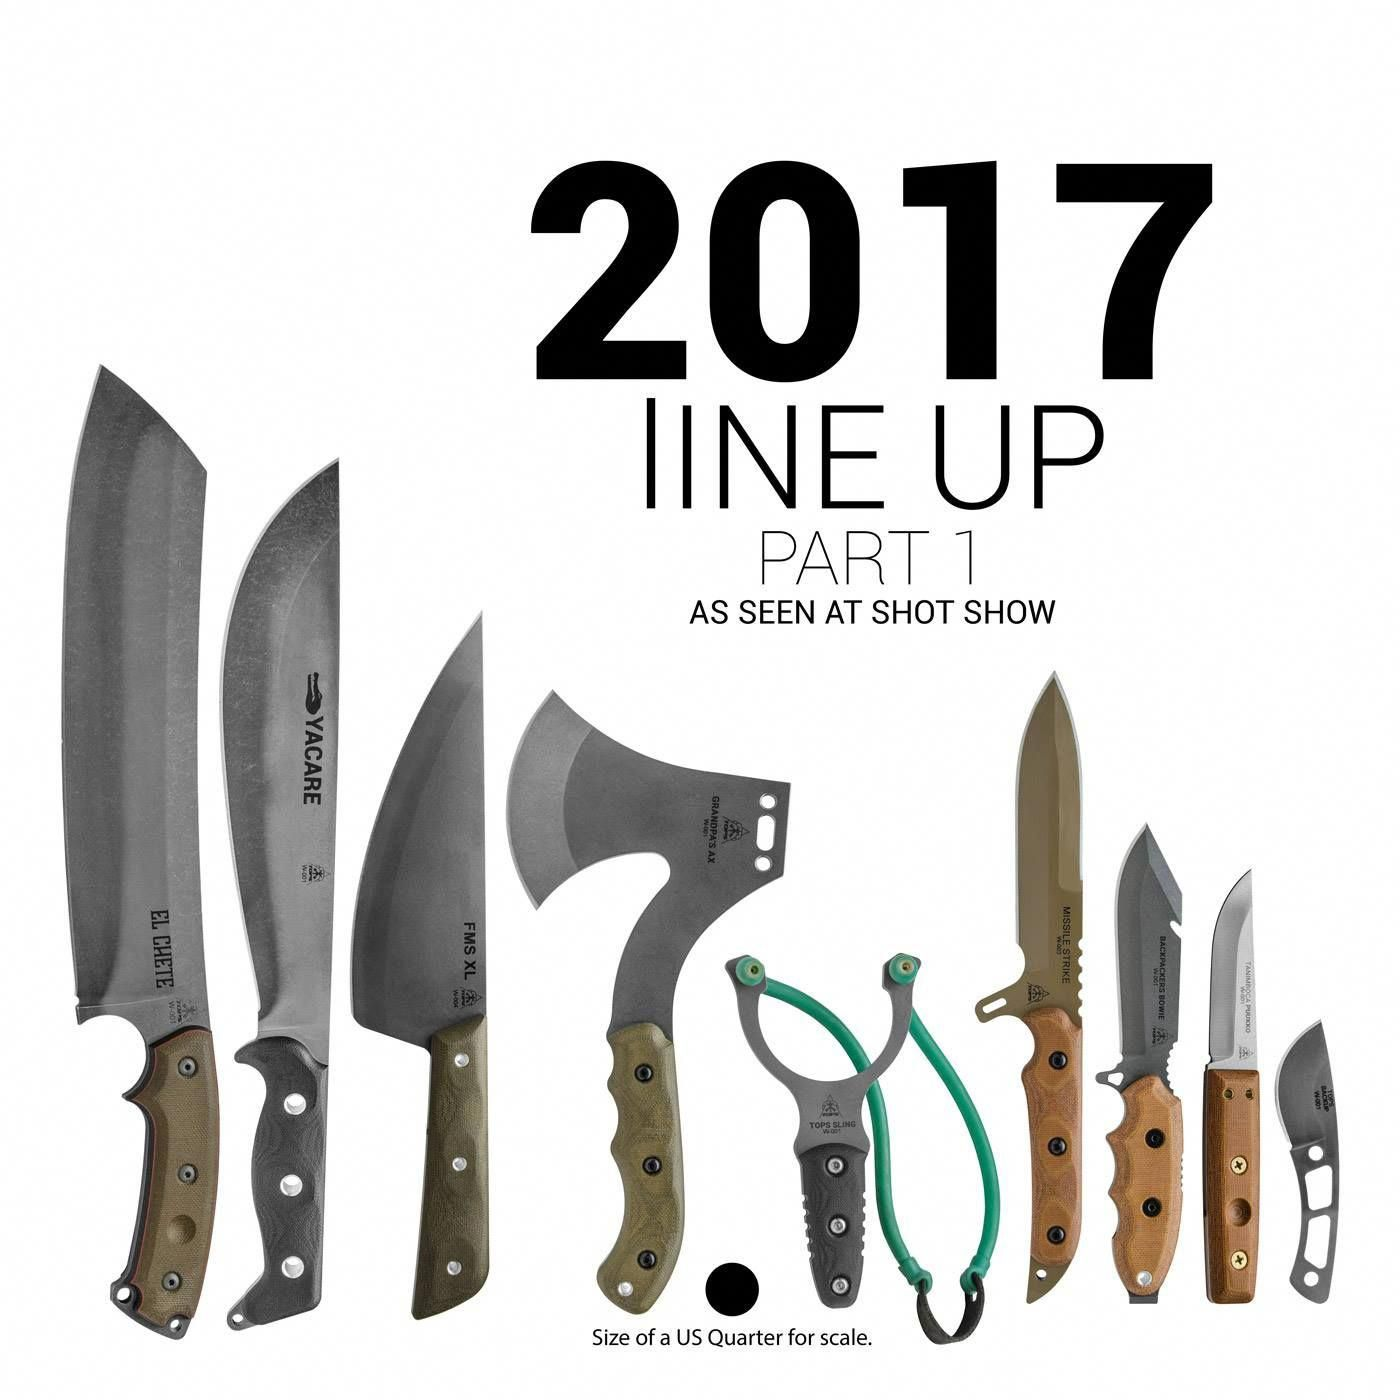 Tactical gear news and reviews Tops knives, Knife, Knife